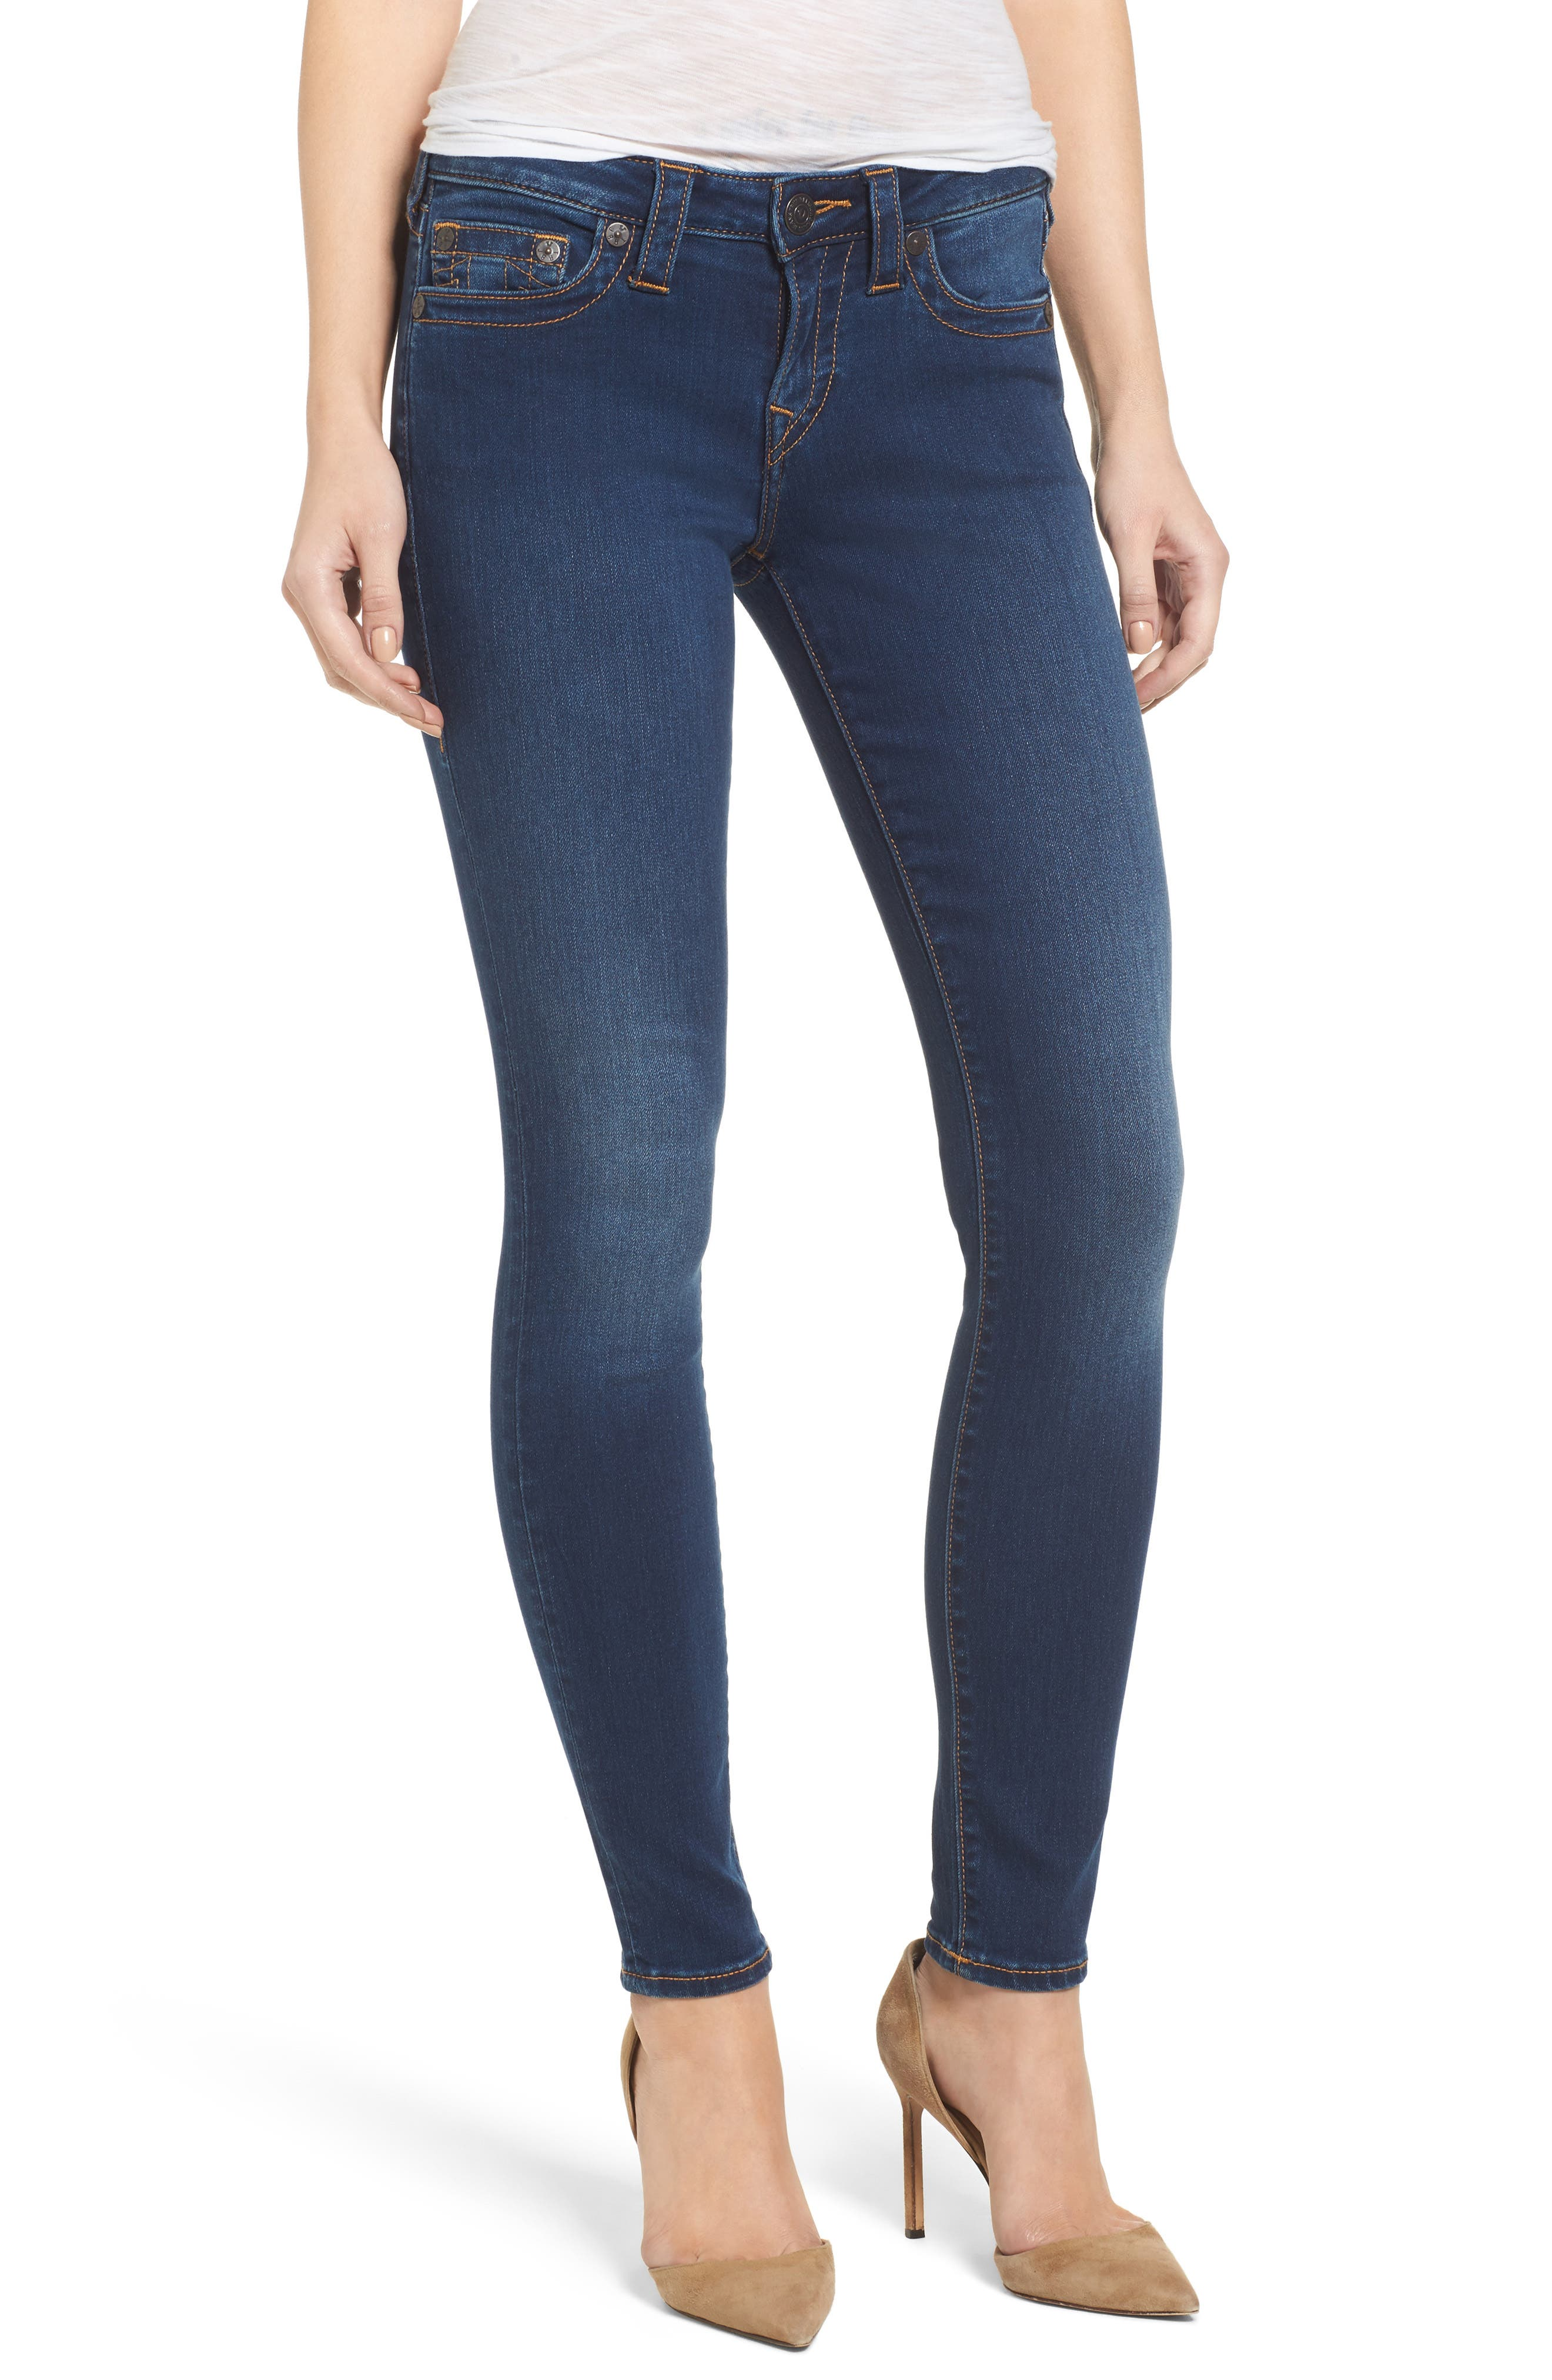 True Religion Brand Jeans Halle Mid Rise Skinny Jeans (Lands End Indigo)